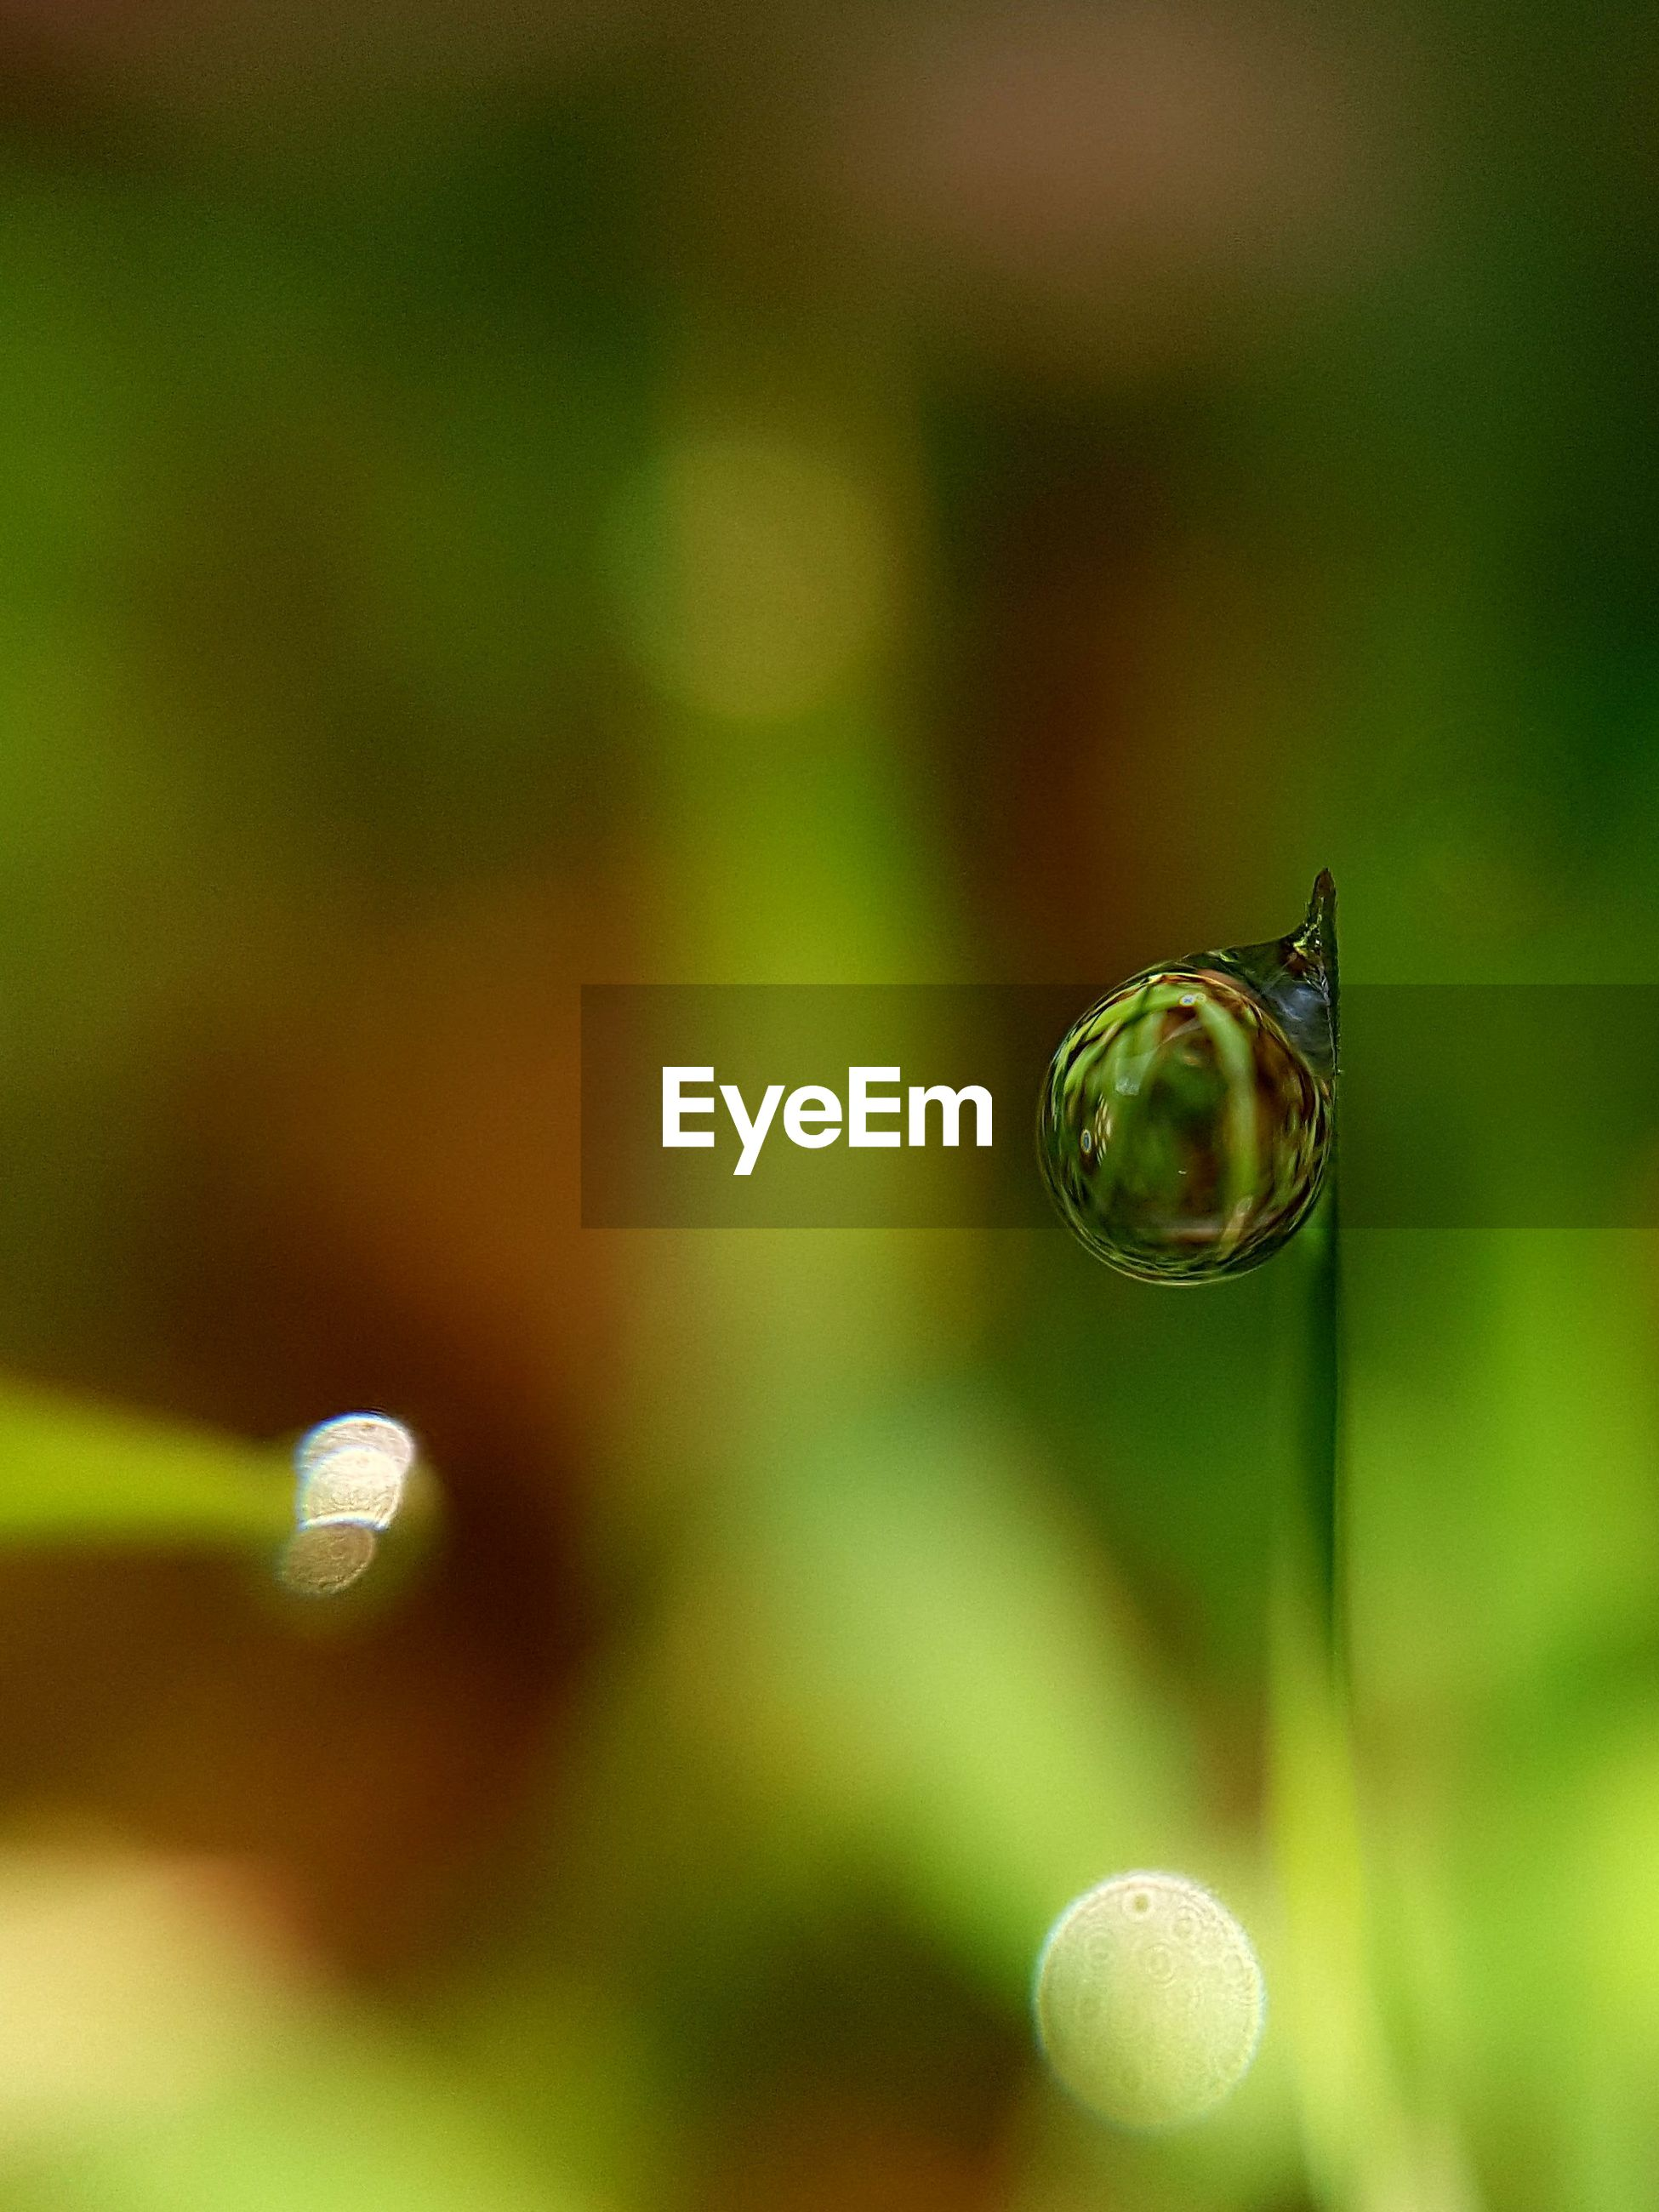 CLOSE-UP OF WATER DROP ON BLURRED BACKGROUND